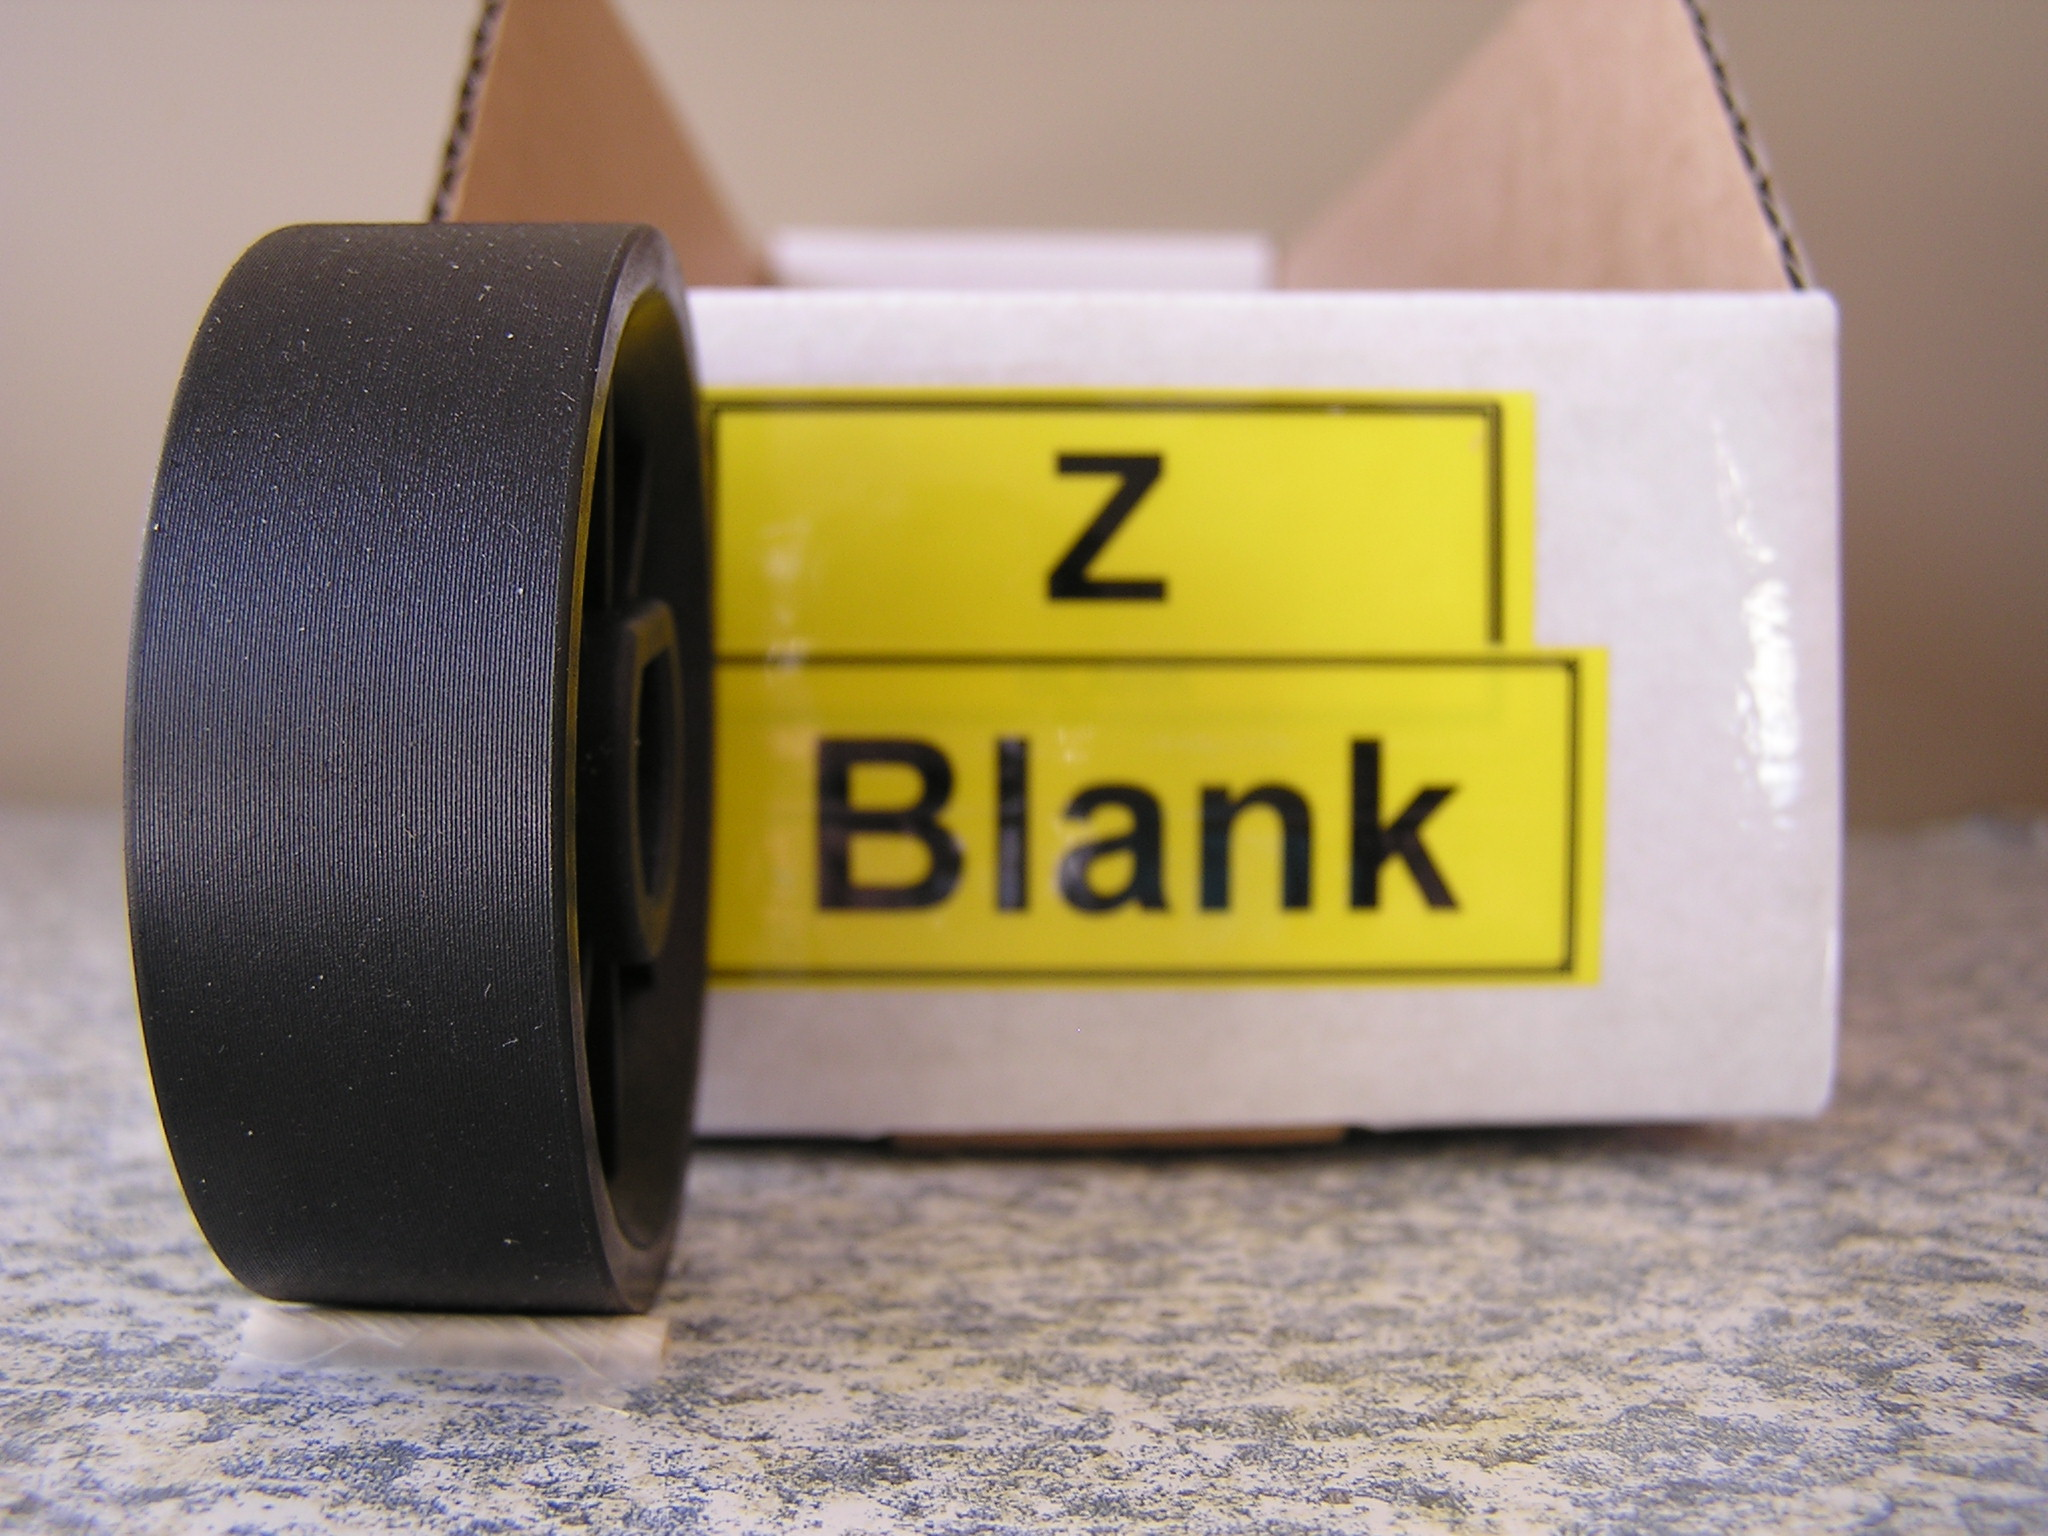 Z Blank Roller -- Create Your Own Roller Slots! Blank Roller for JP Series